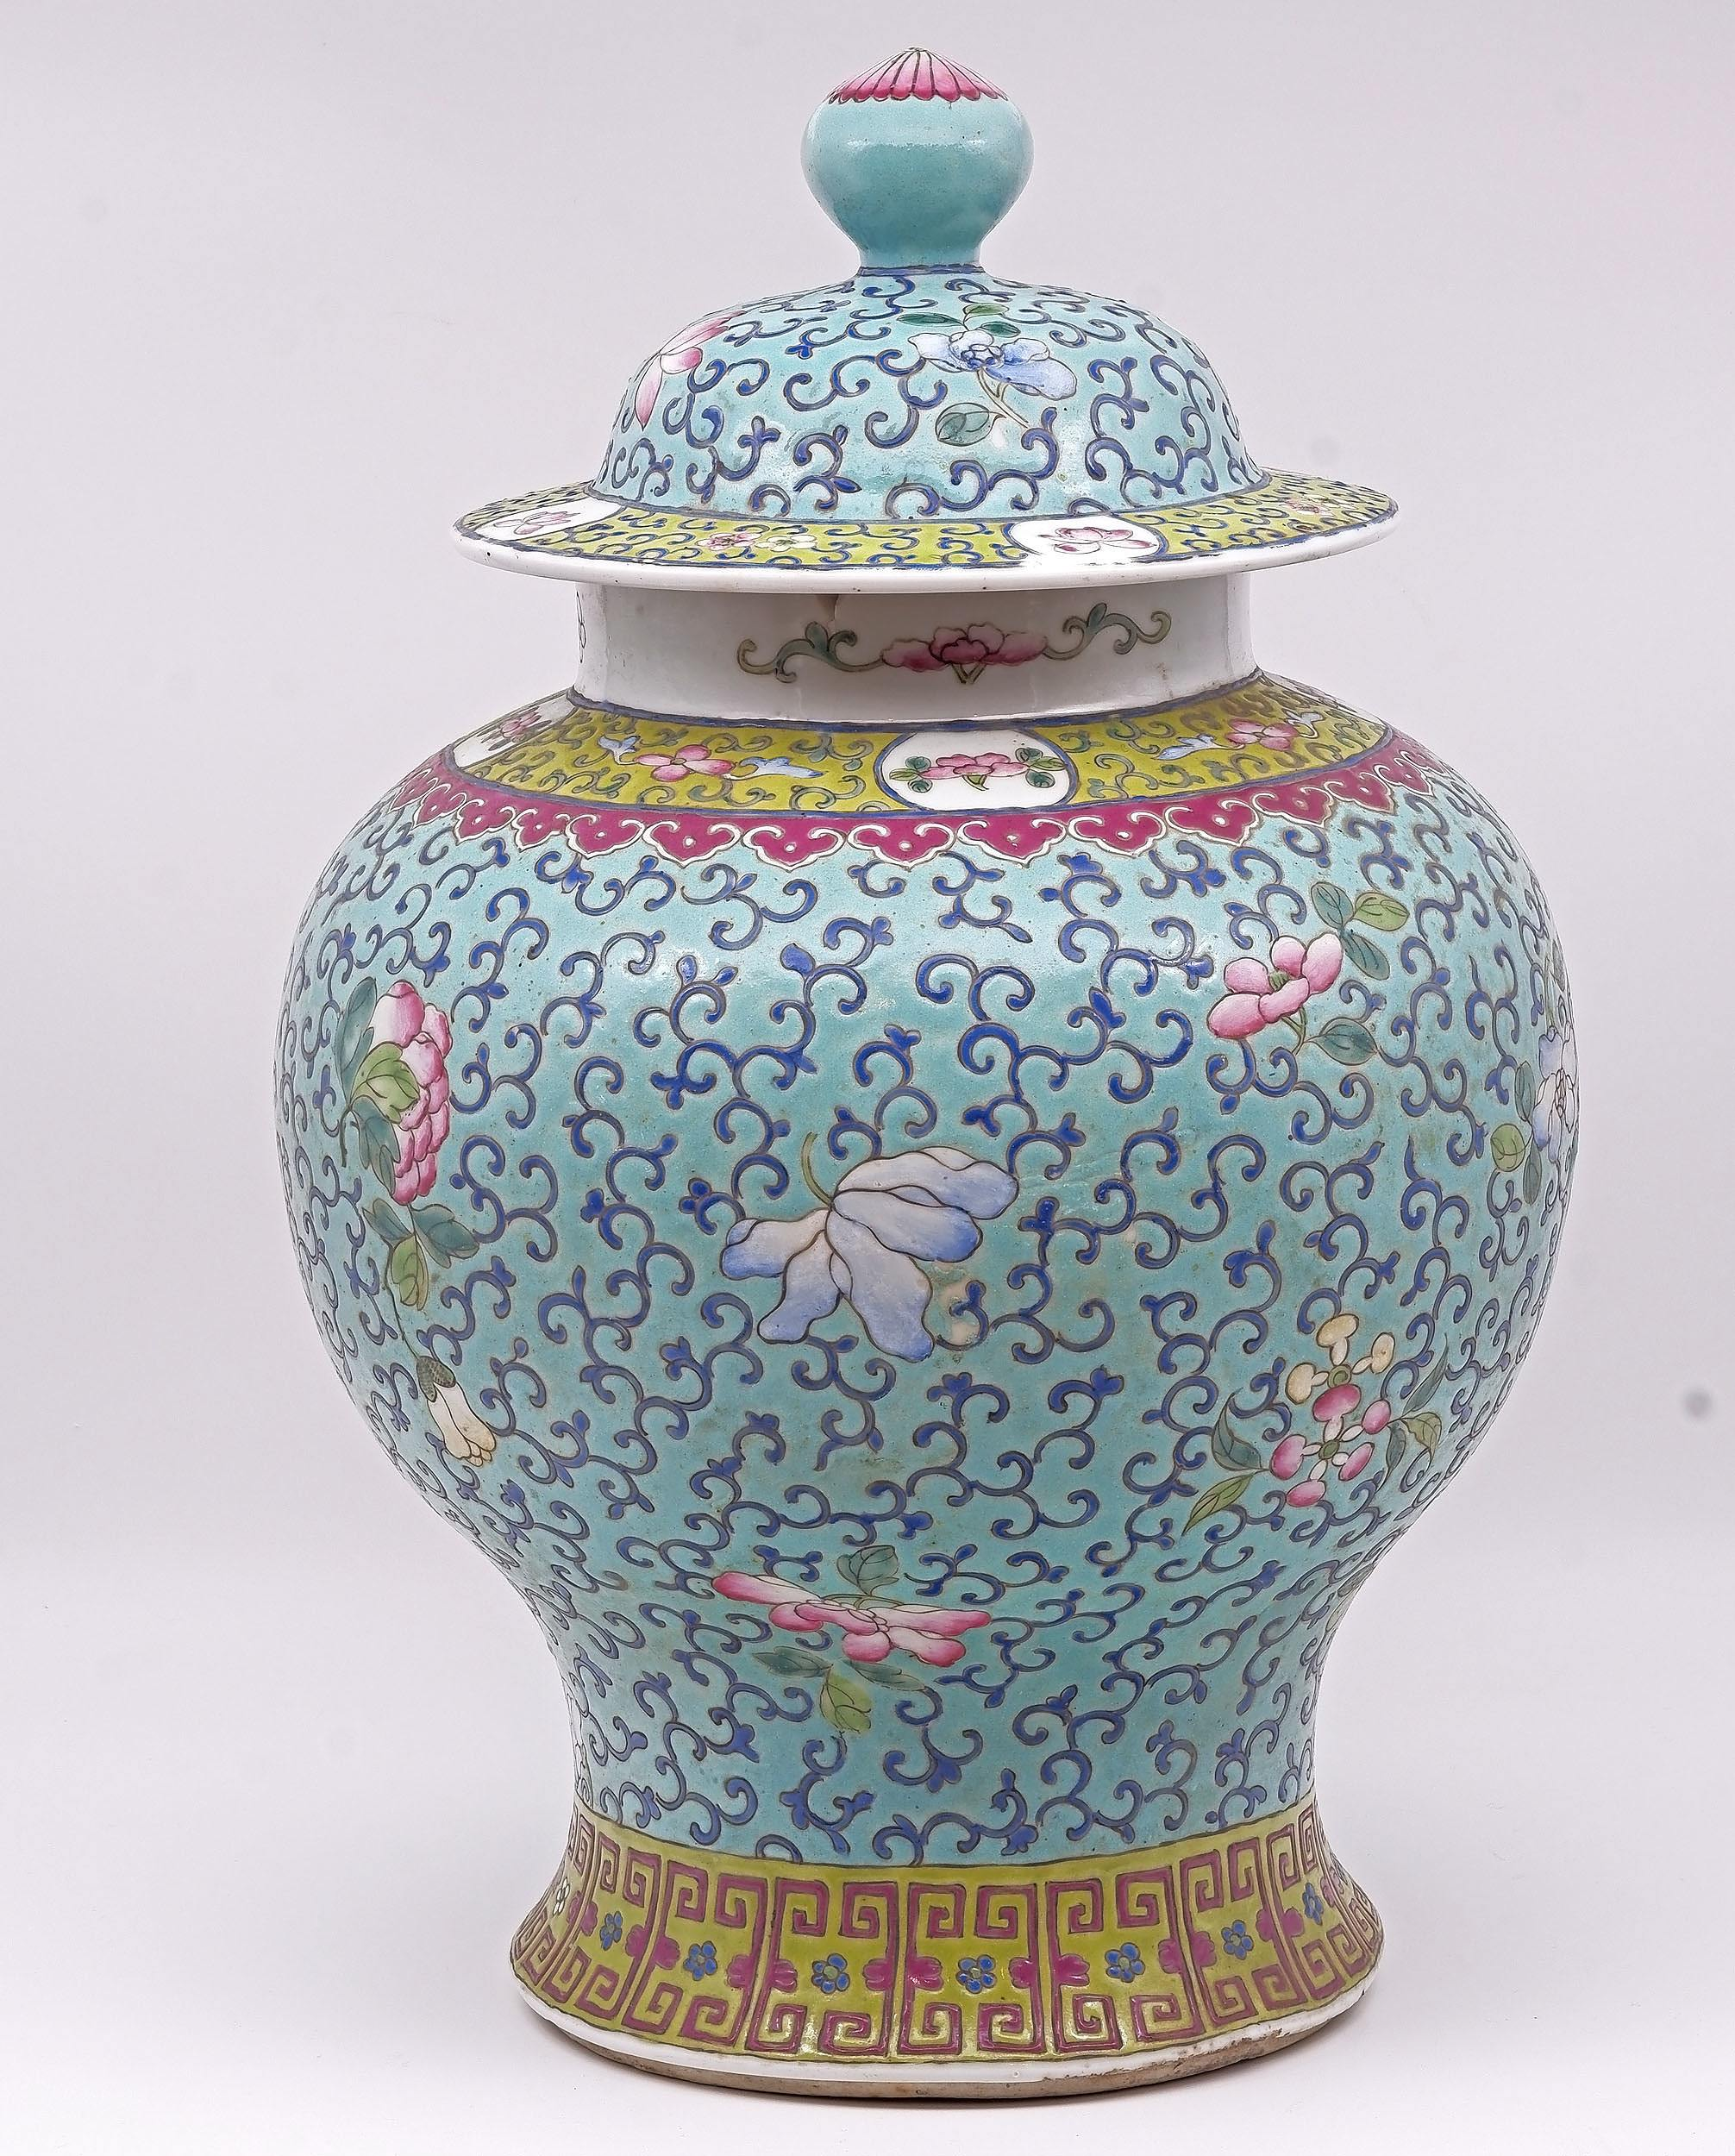 'Antique Chinese Famille Rose Large Jar and Cover, Late Qing Dynasty'